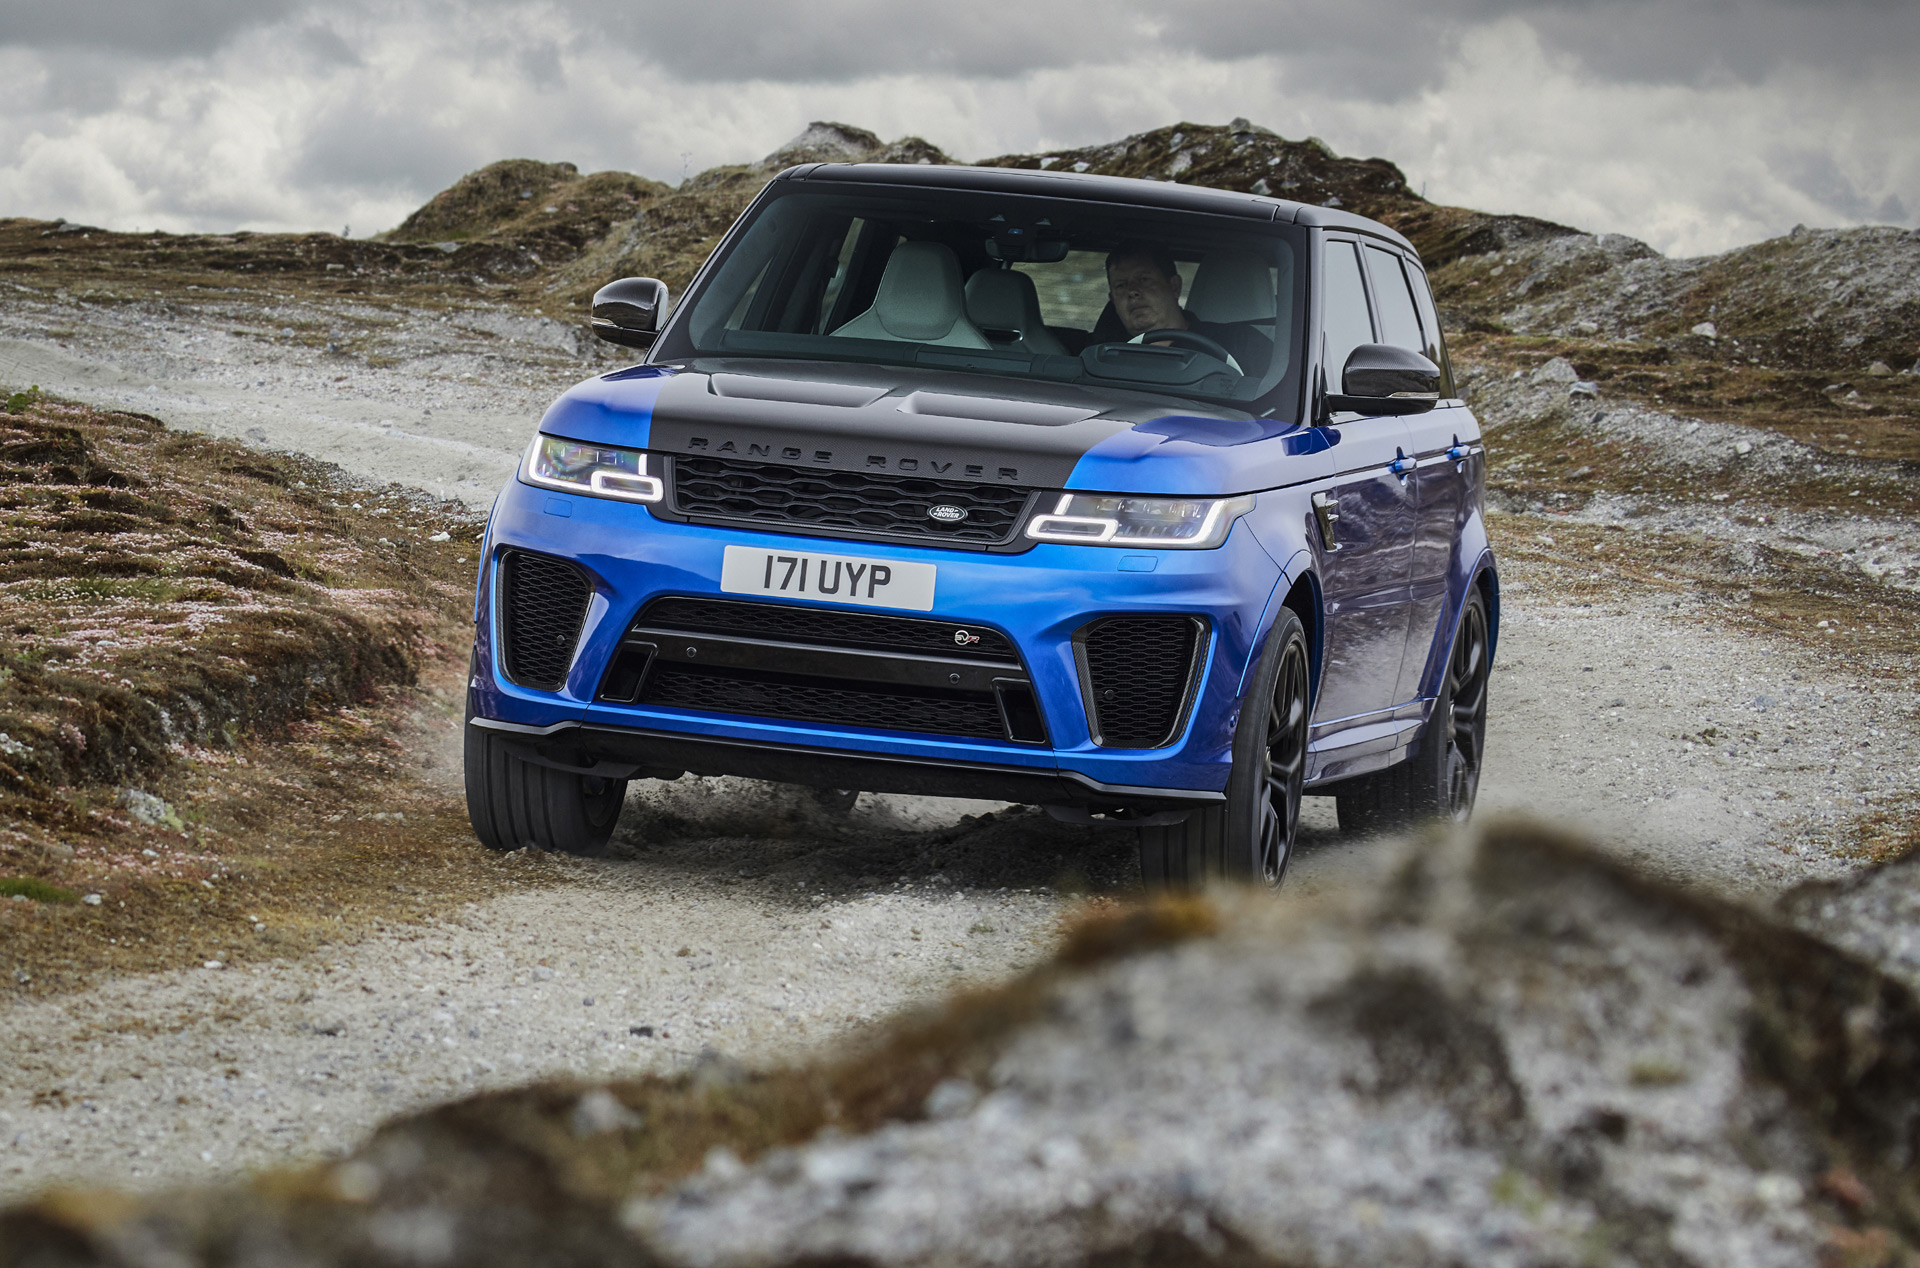 2018 land rover range rover sport svr revealed with 575 horsepower. Black Bedroom Furniture Sets. Home Design Ideas